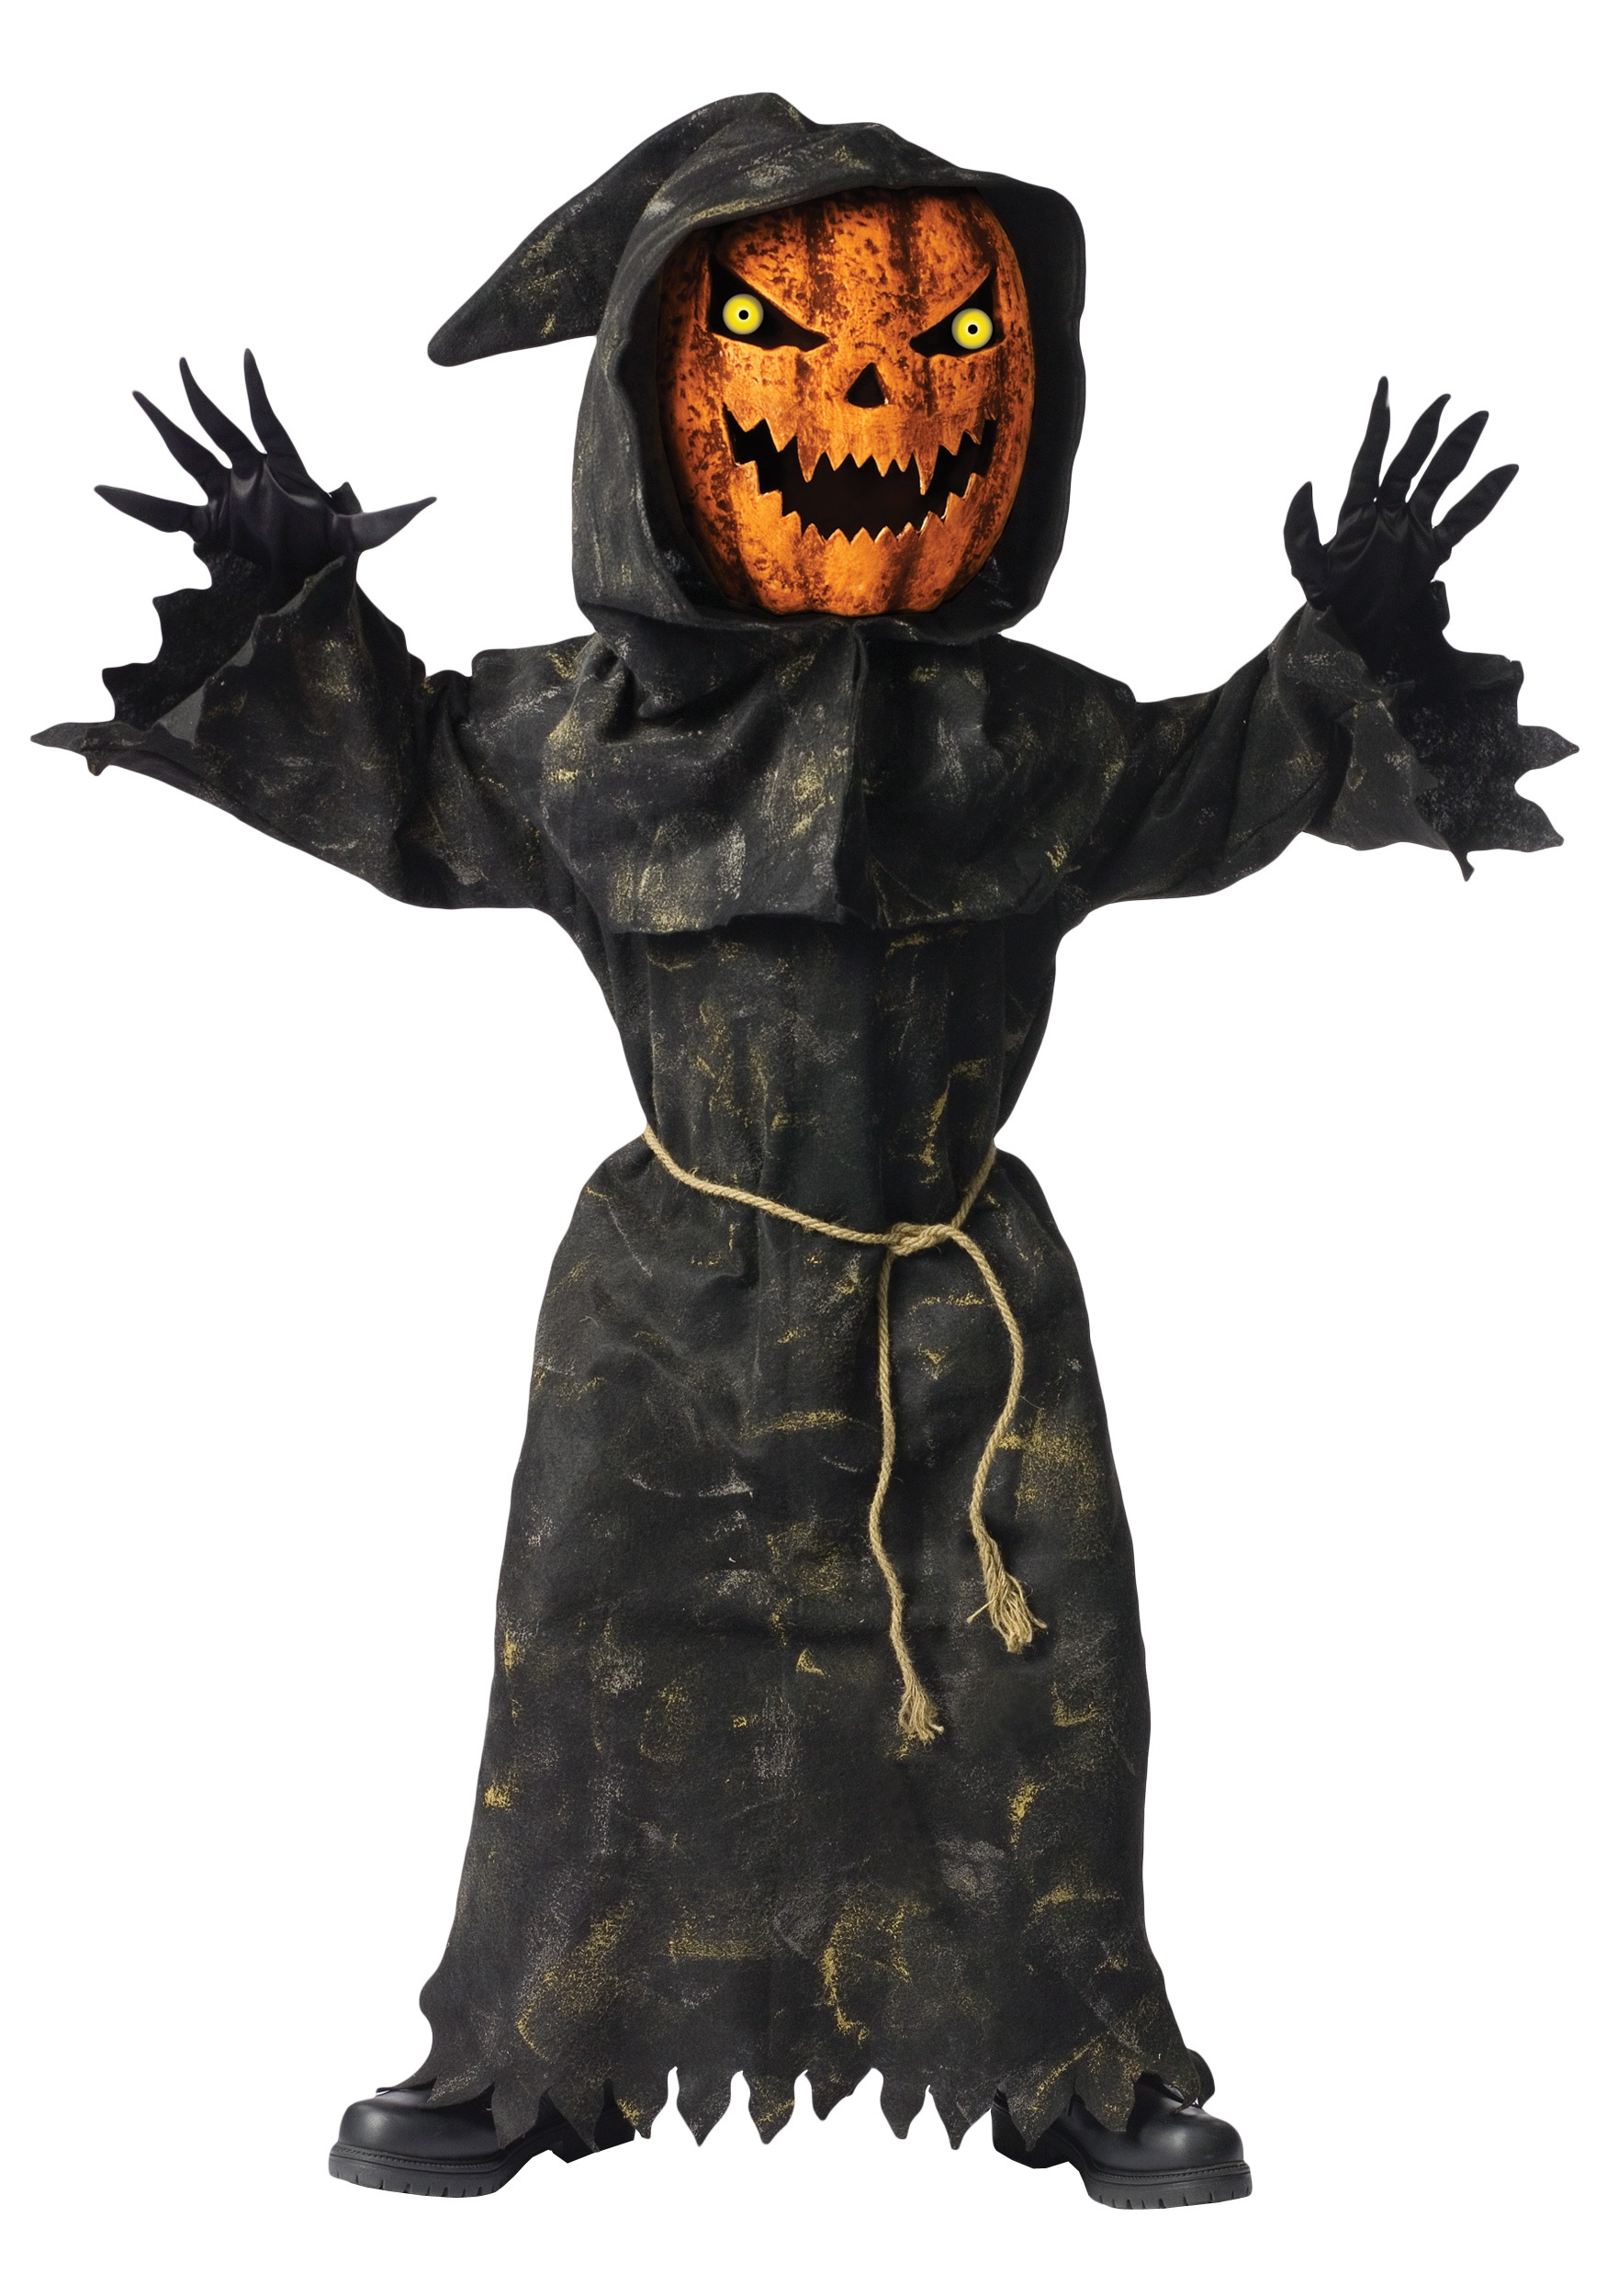 Uncategorized Scary Halloween Pictures For Kids child bobble eyes pumpkin costume kids scary halloween costumes googly costume